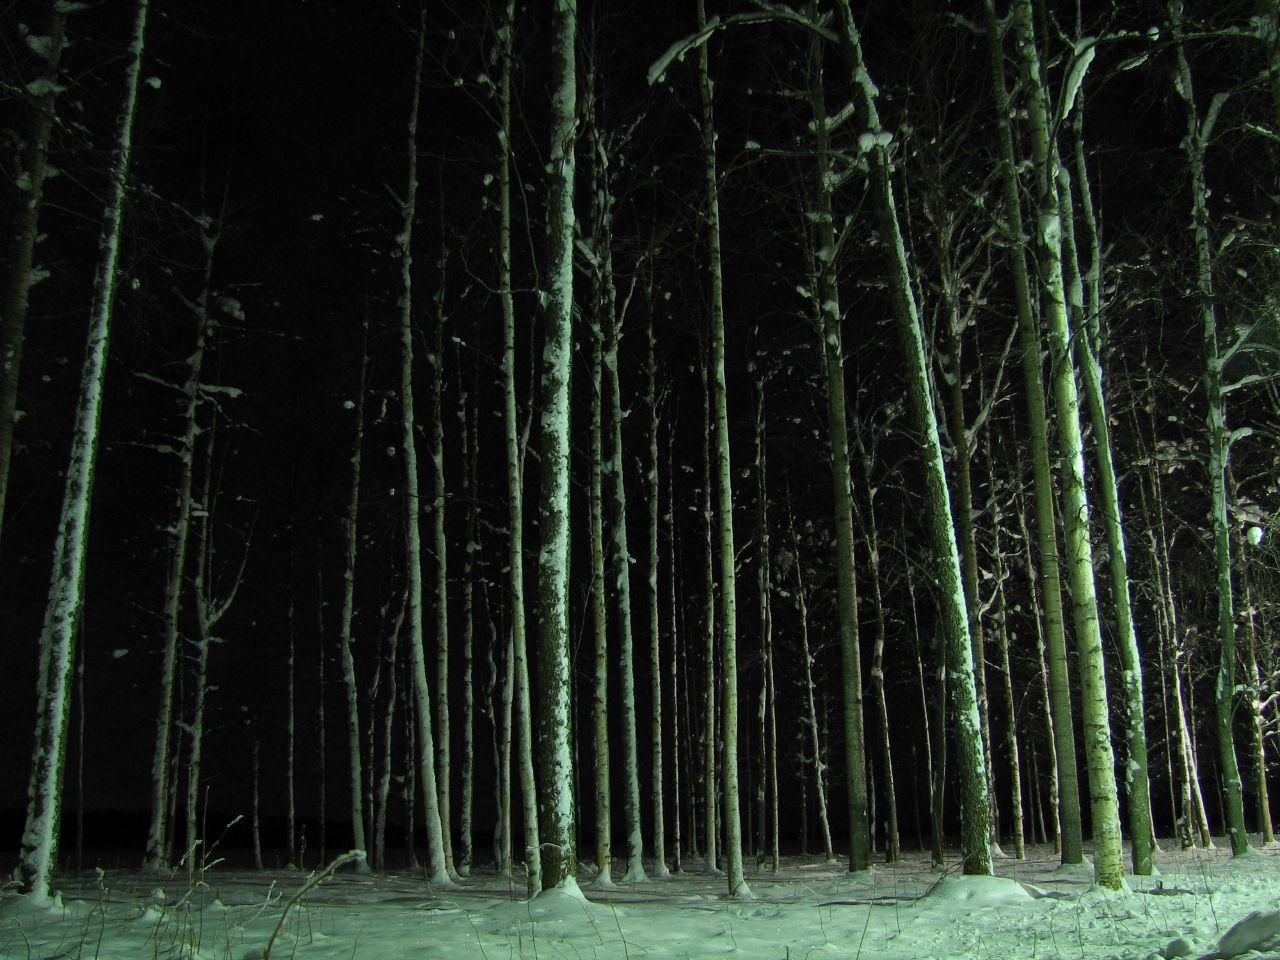 imposing image of trees in a forest at night